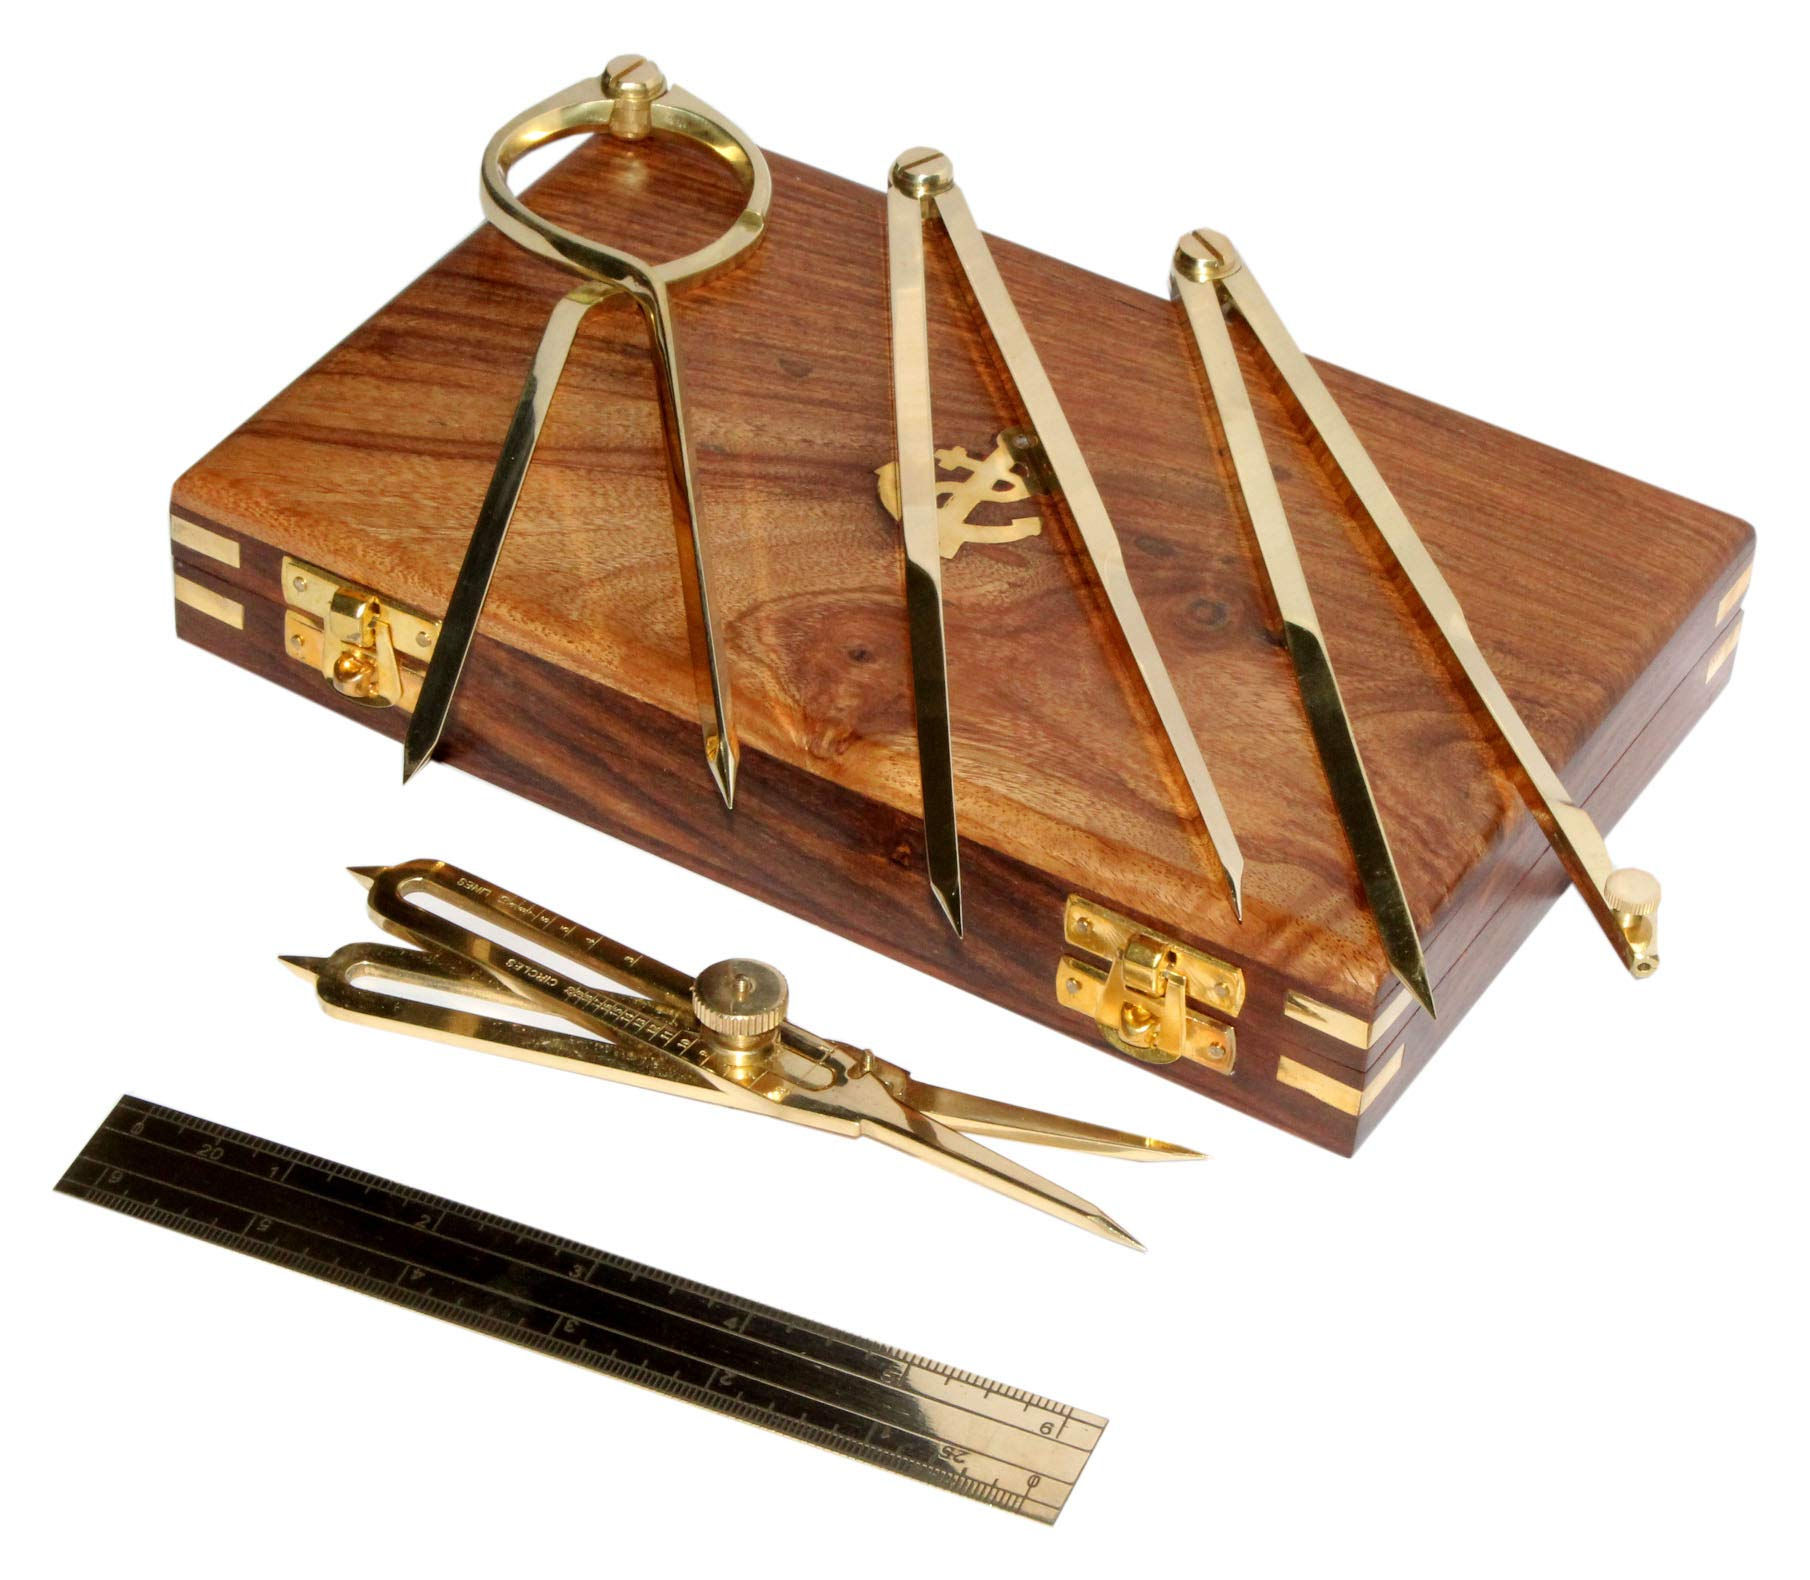 Proportional Divider Set of 5, Full Brass dividers with Executive Wooden Box, Single Handed 8'' Brass Navigational Dividers Compass Set for Maritime, Naval, Geometry and Drafting by 5MOONSUN5